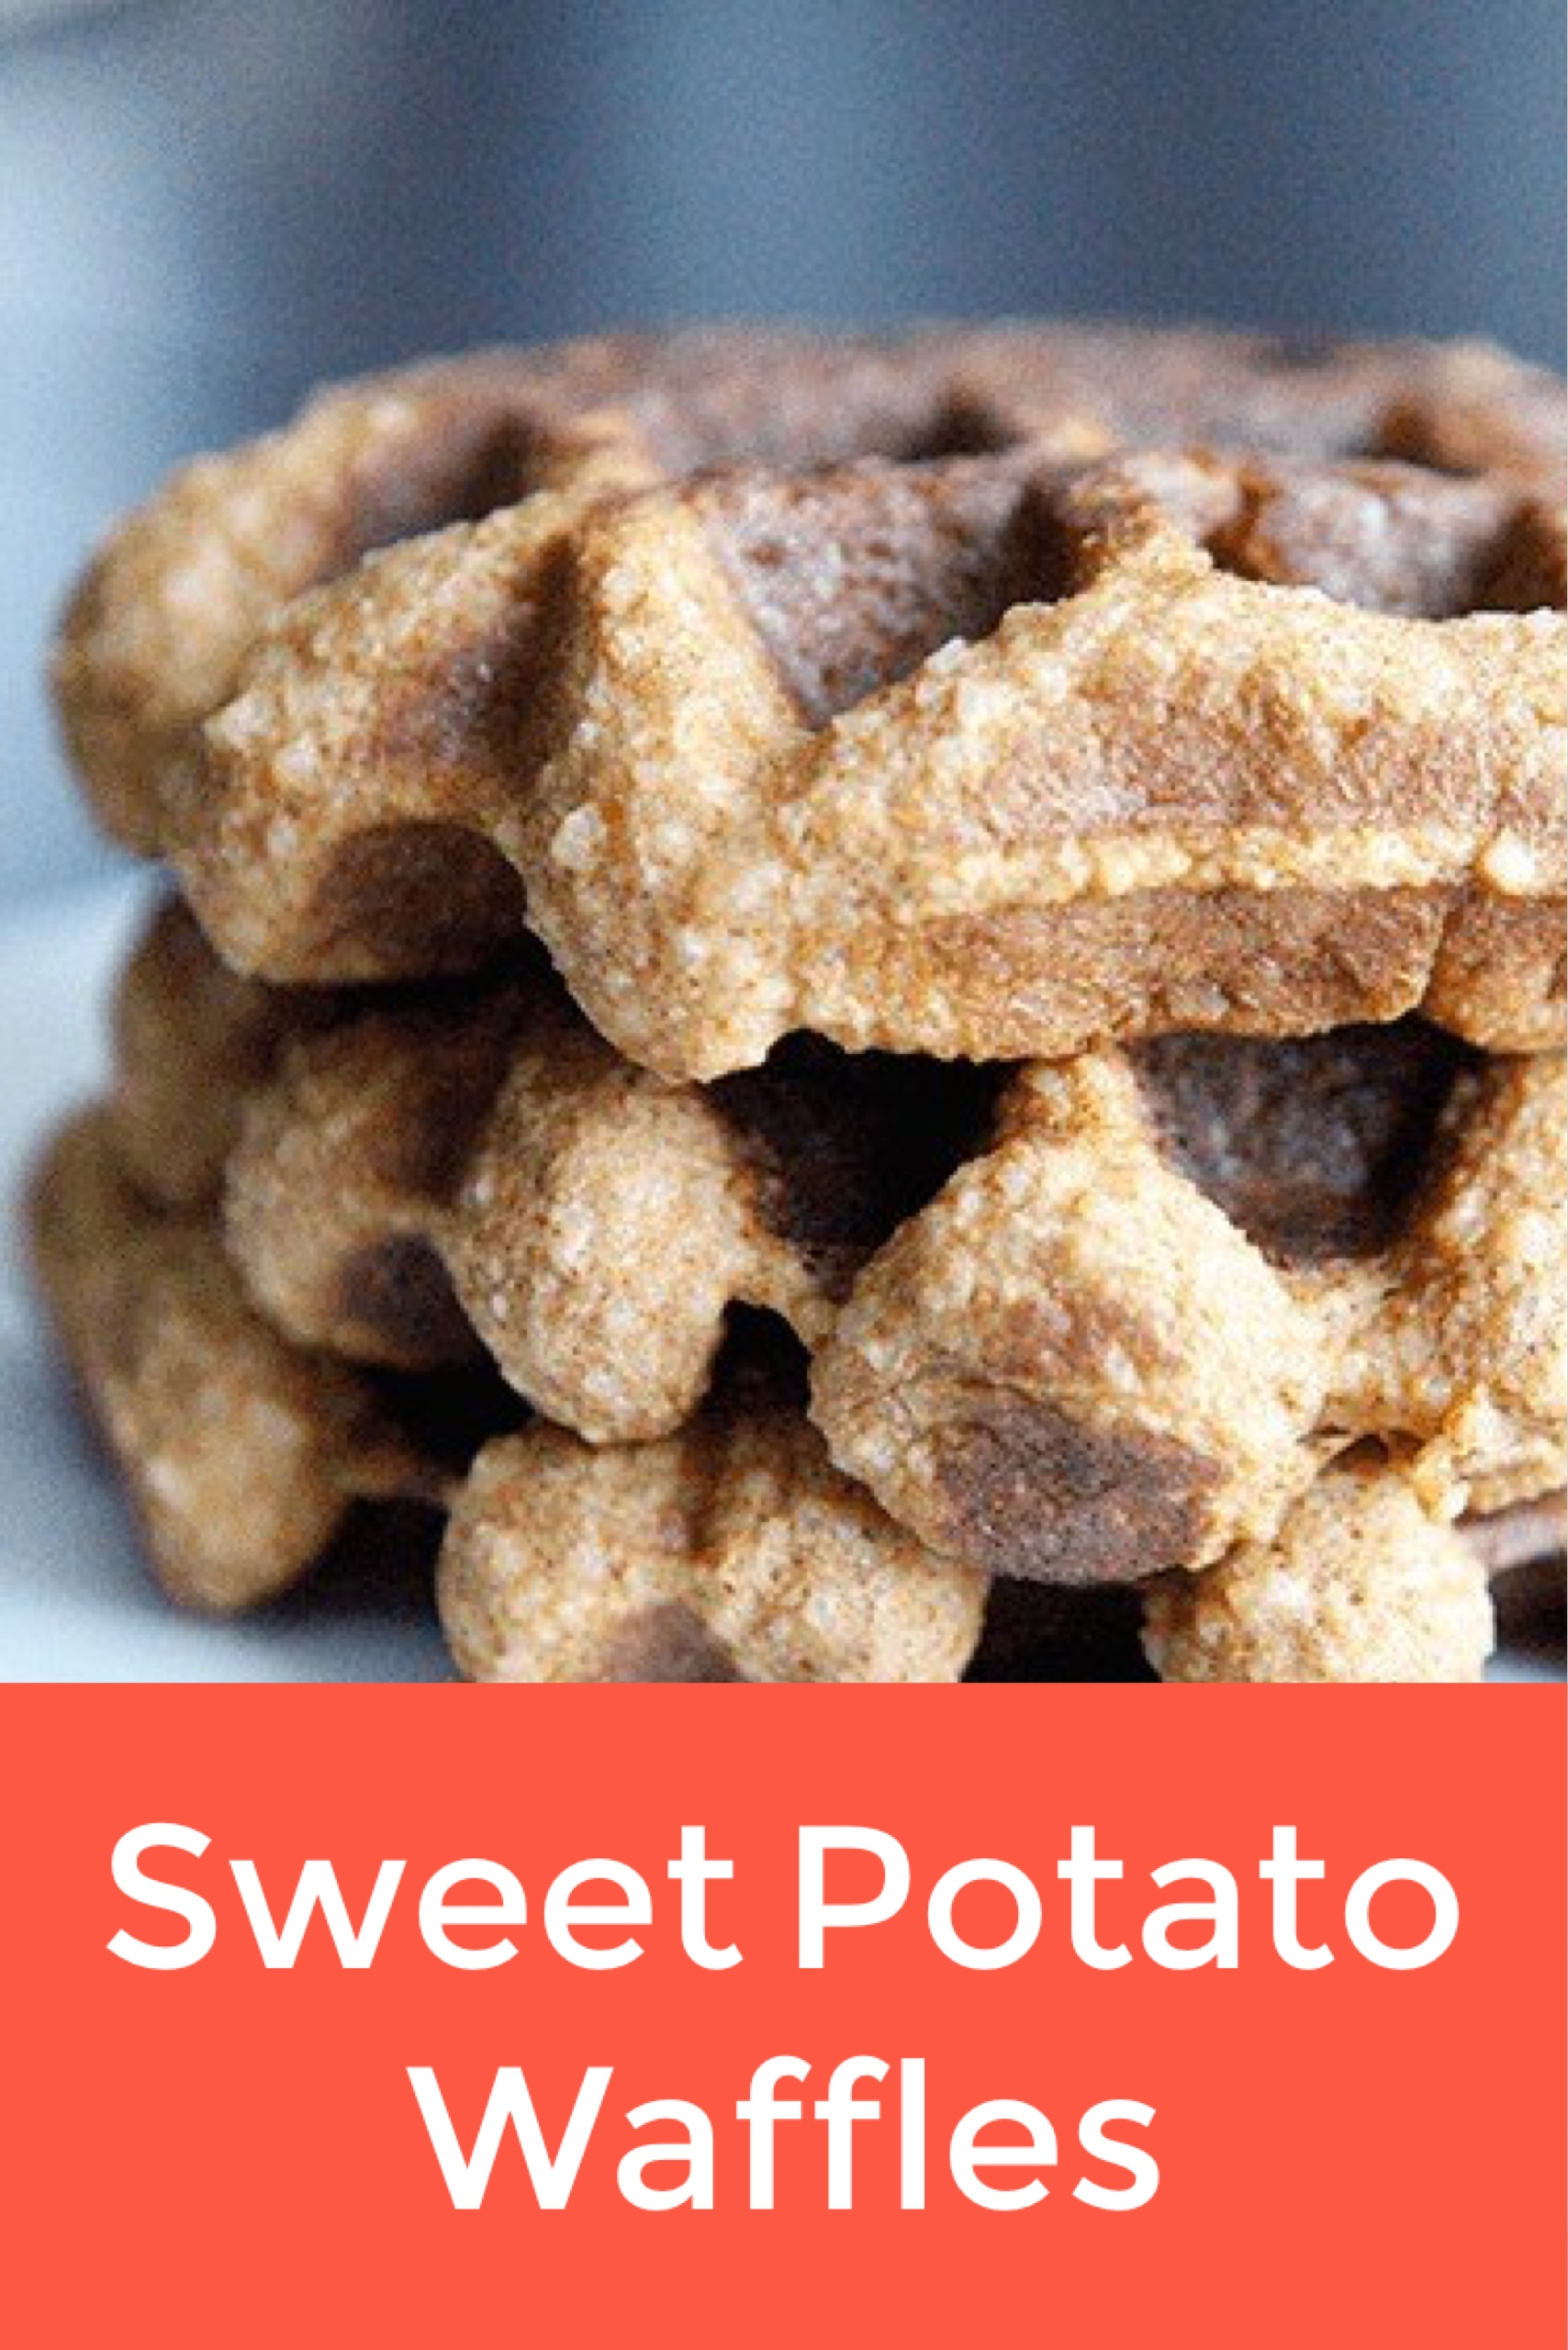 Sweet Potato Waffles - by AmazingPaleo.com